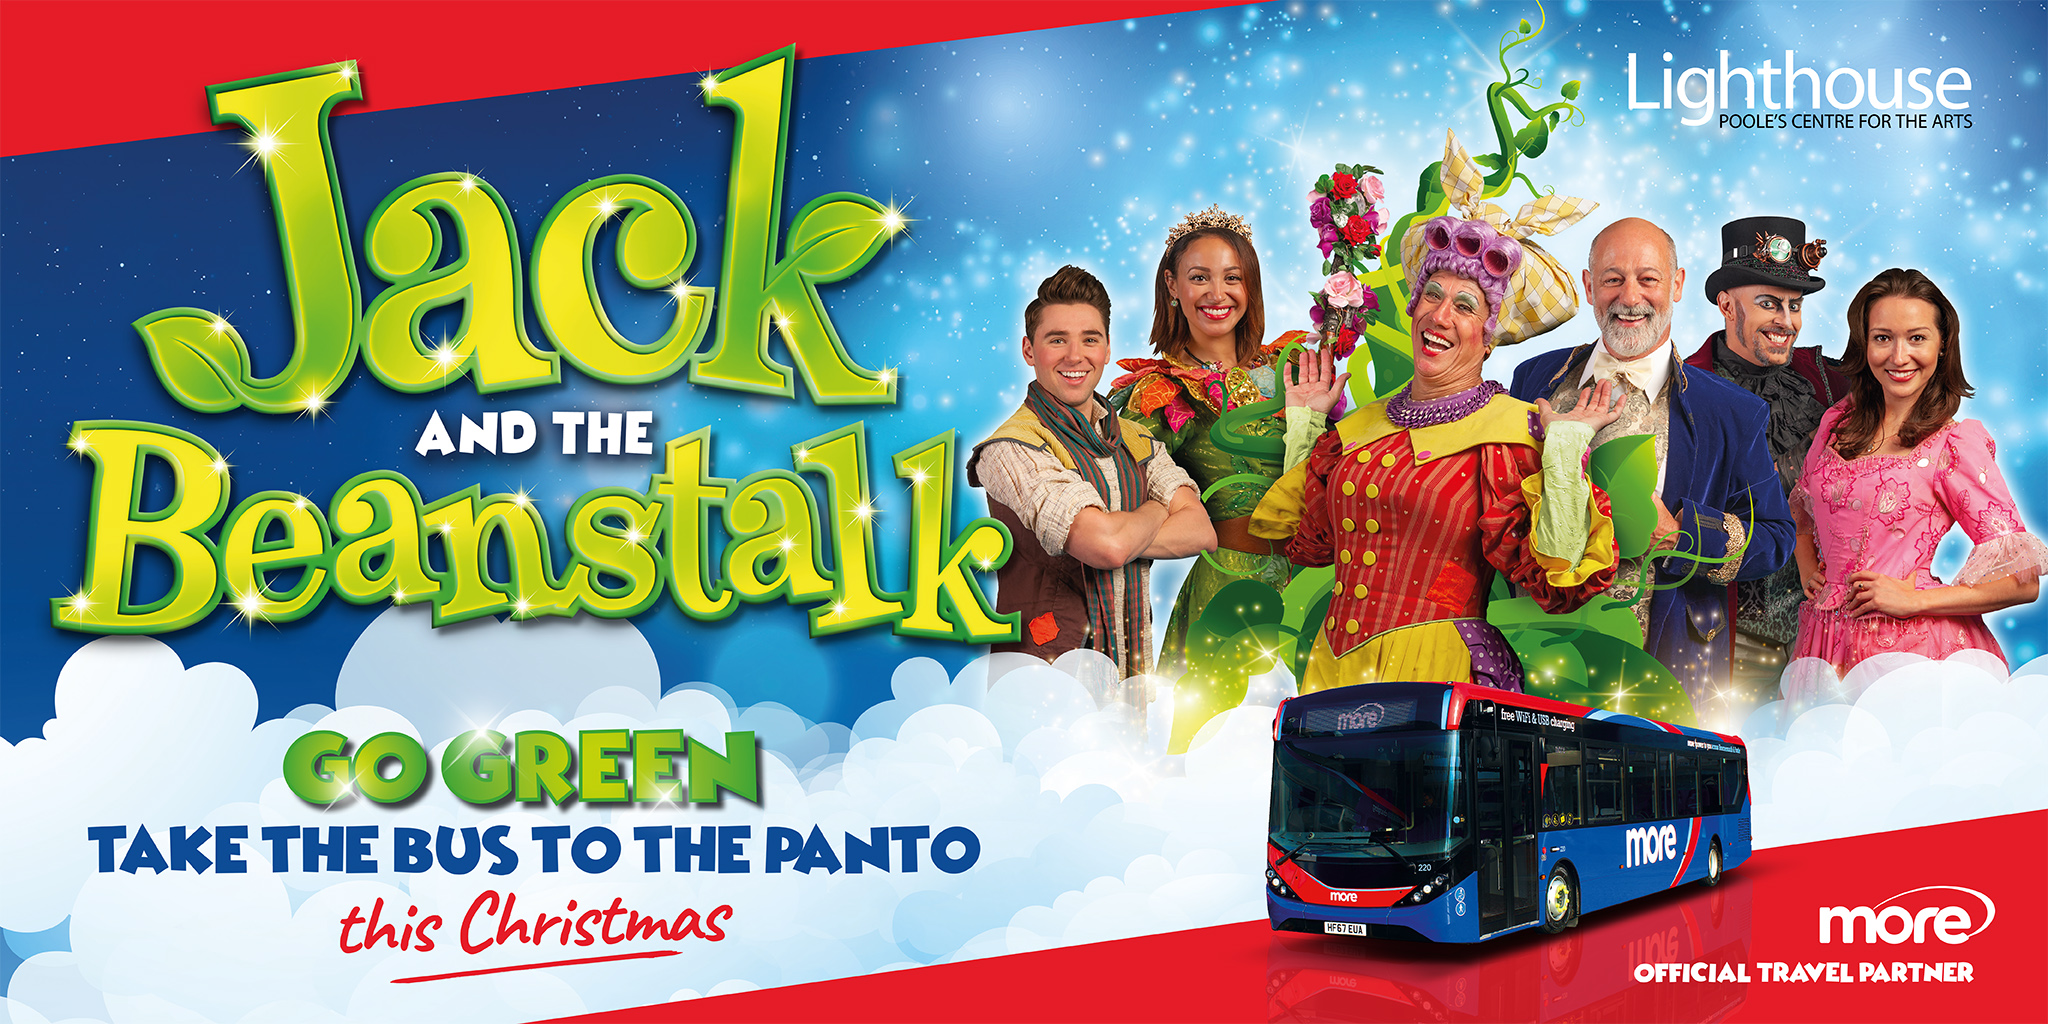 Illustration reading 'Jack and the Beanstalk - go green, take the bus to the panto this Christmas'